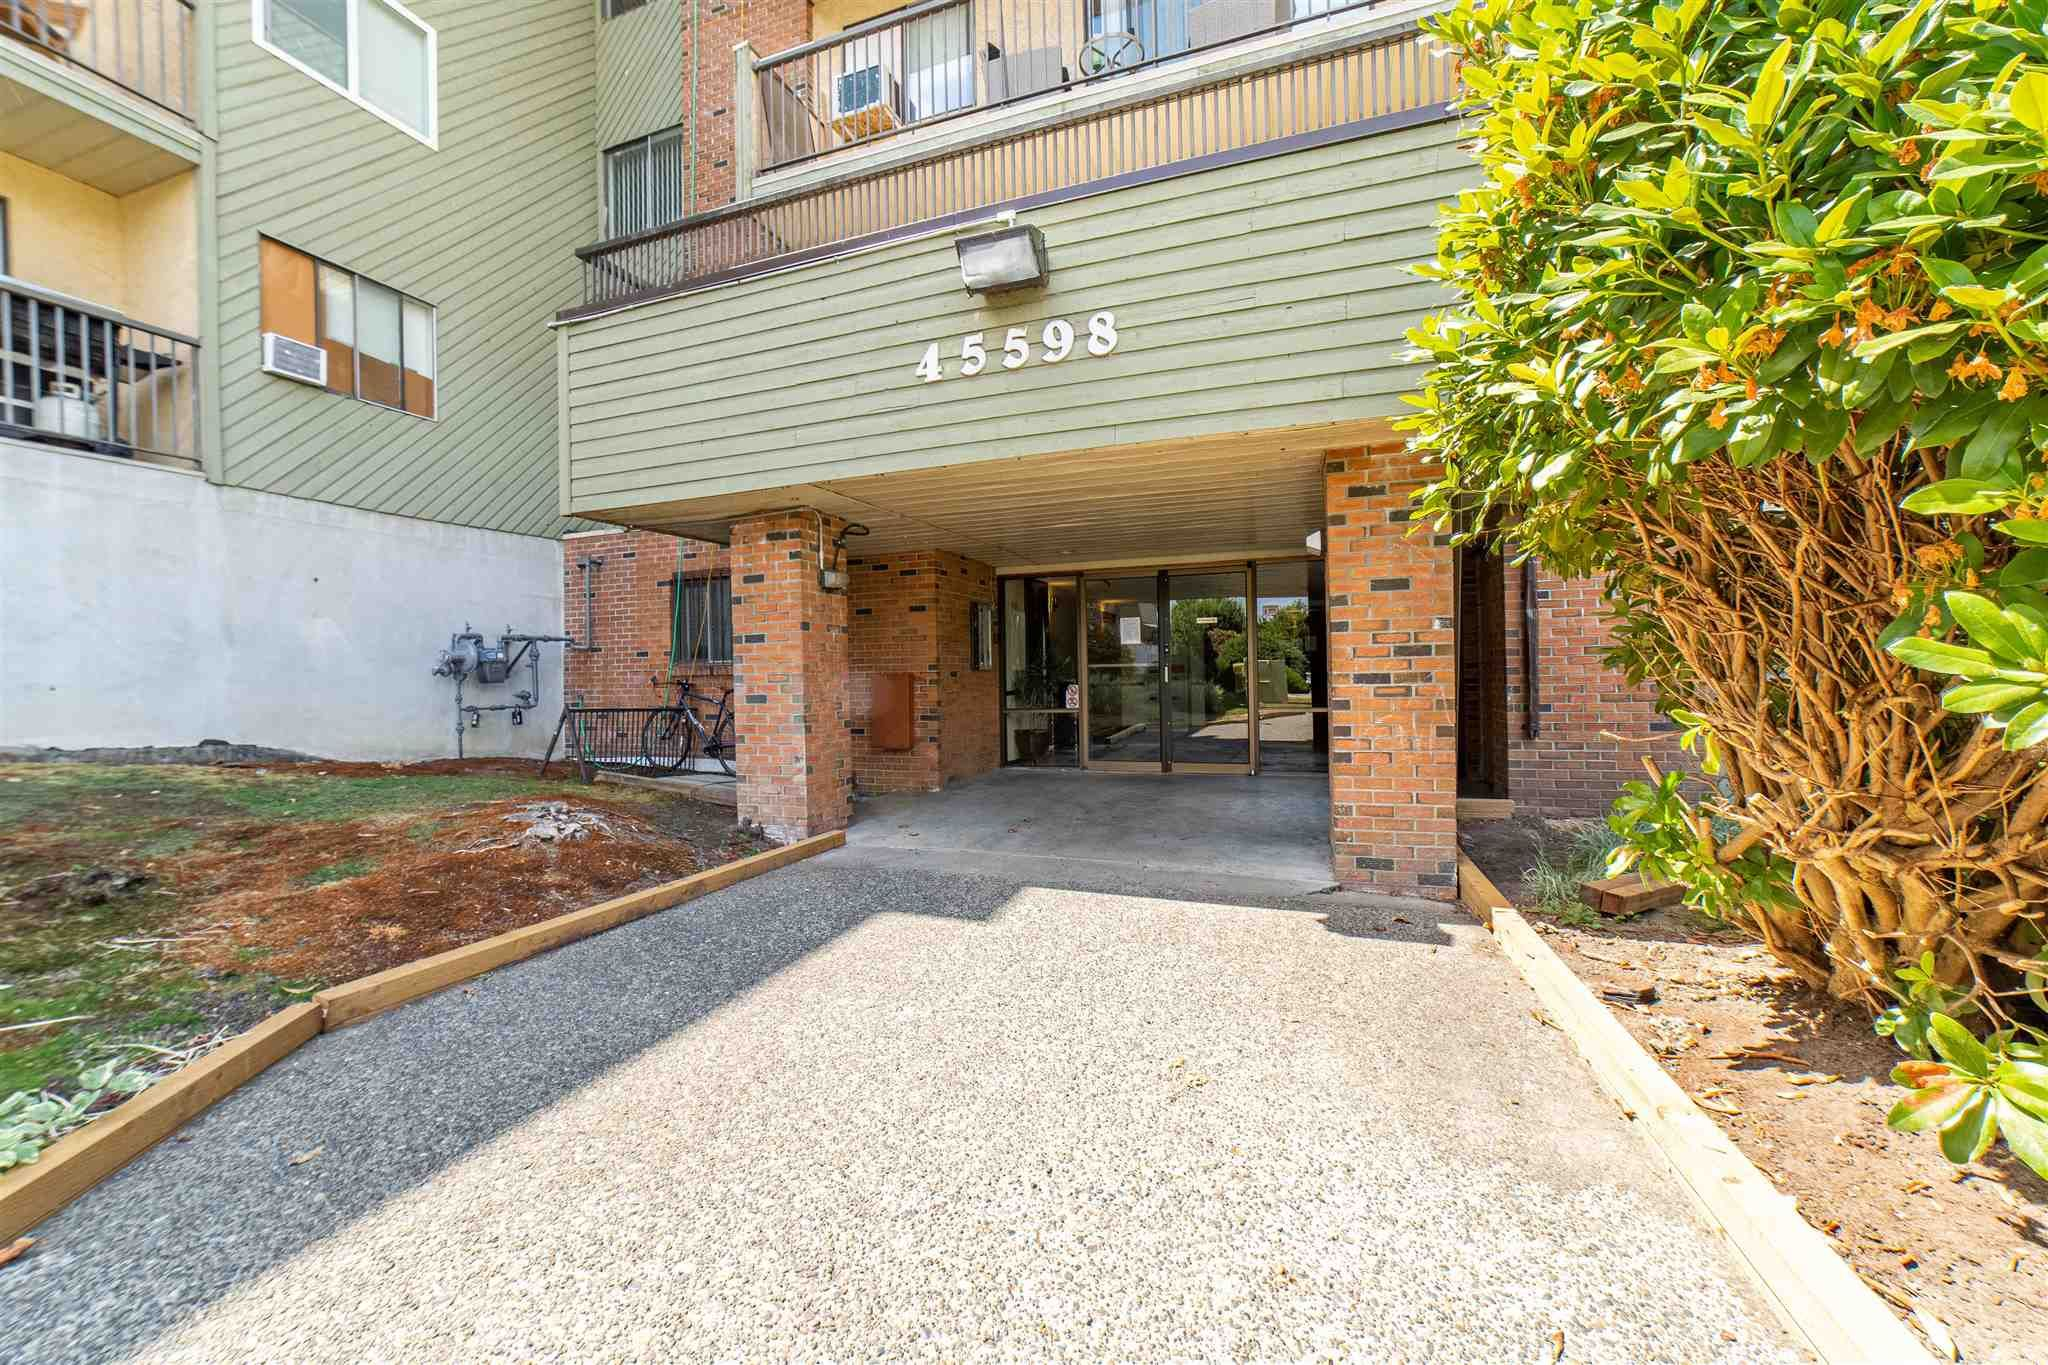 Main Photo: 308 45598 MCINTOSH Drive in Chilliwack: Chilliwack W Young-Well Condo for sale : MLS®# R2603170